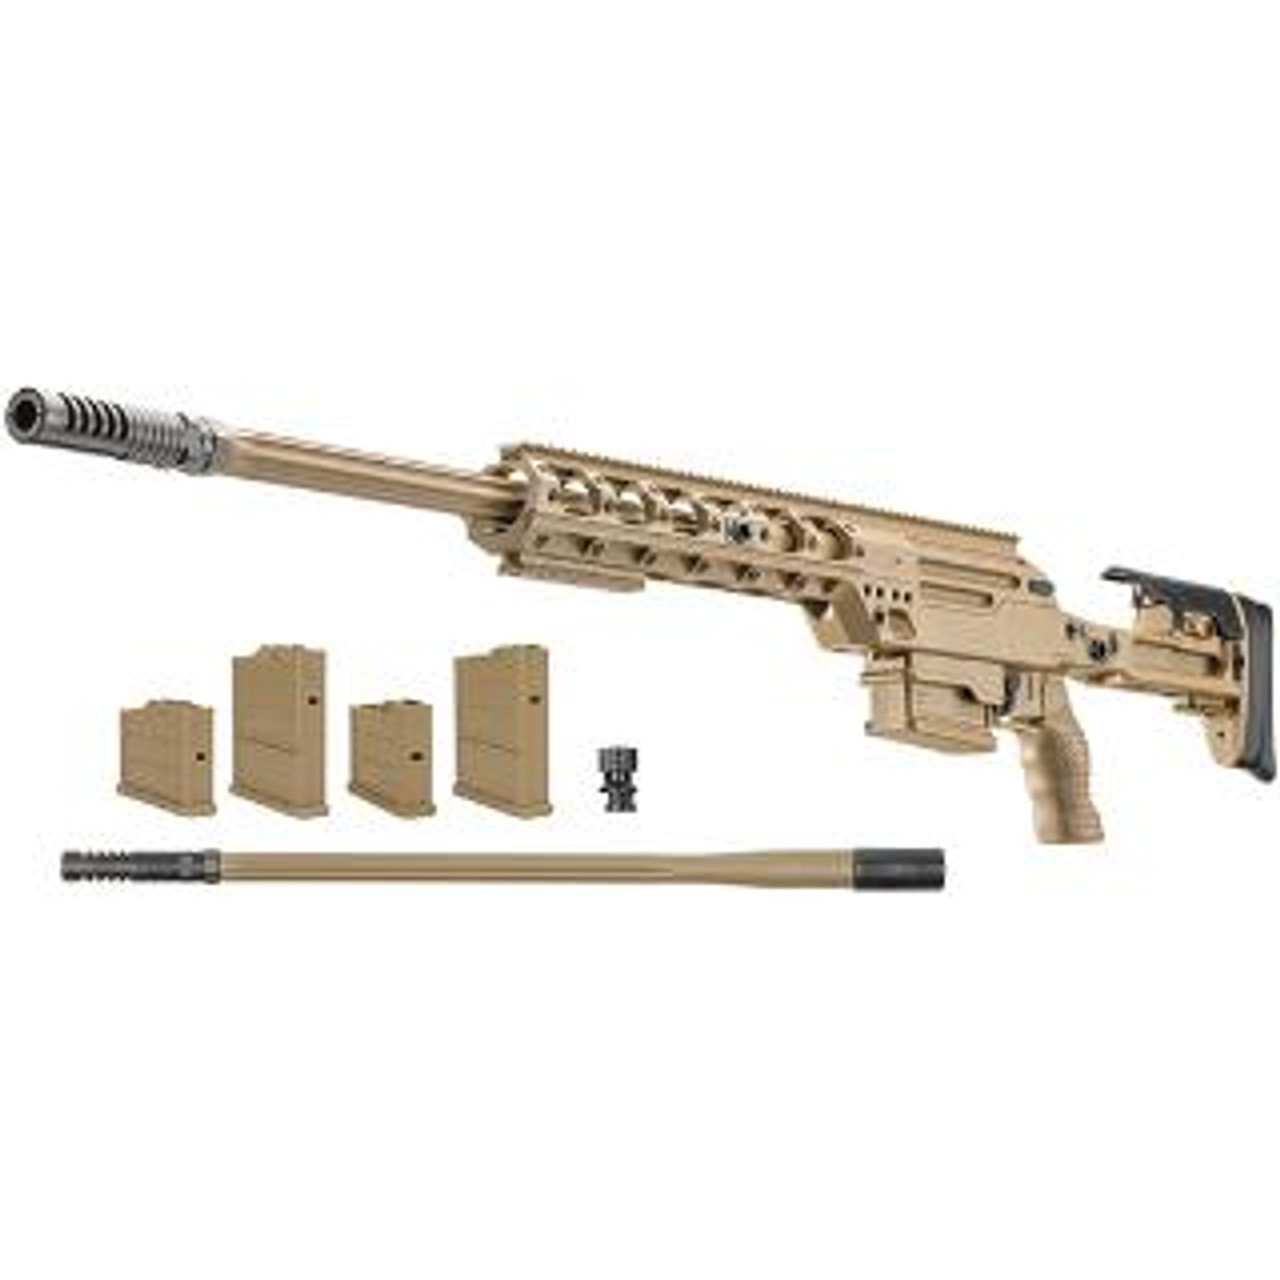 FNH Ballista Dual Caliber CALIFORNIA LEGAL - .338 & .308